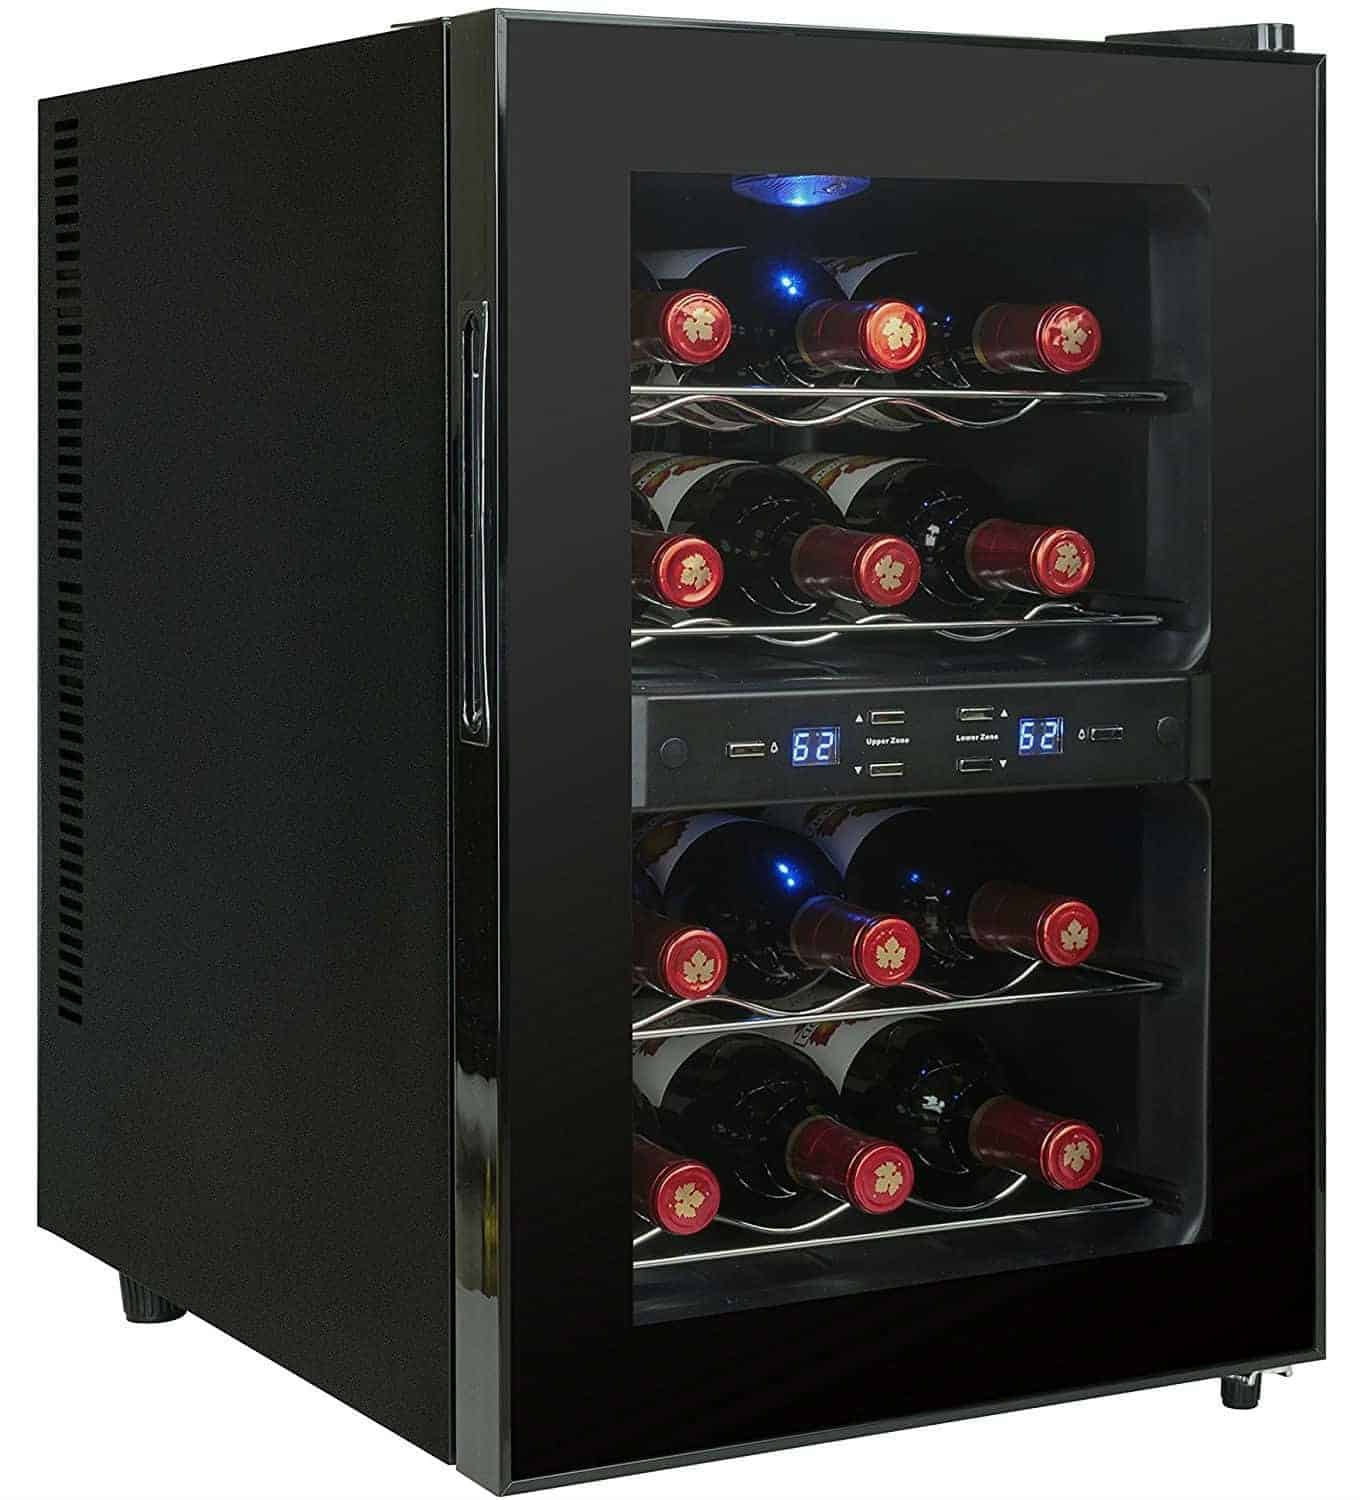 AKDY Black Freestanding Thermoelectric Counter Dual Zone Wine cooler